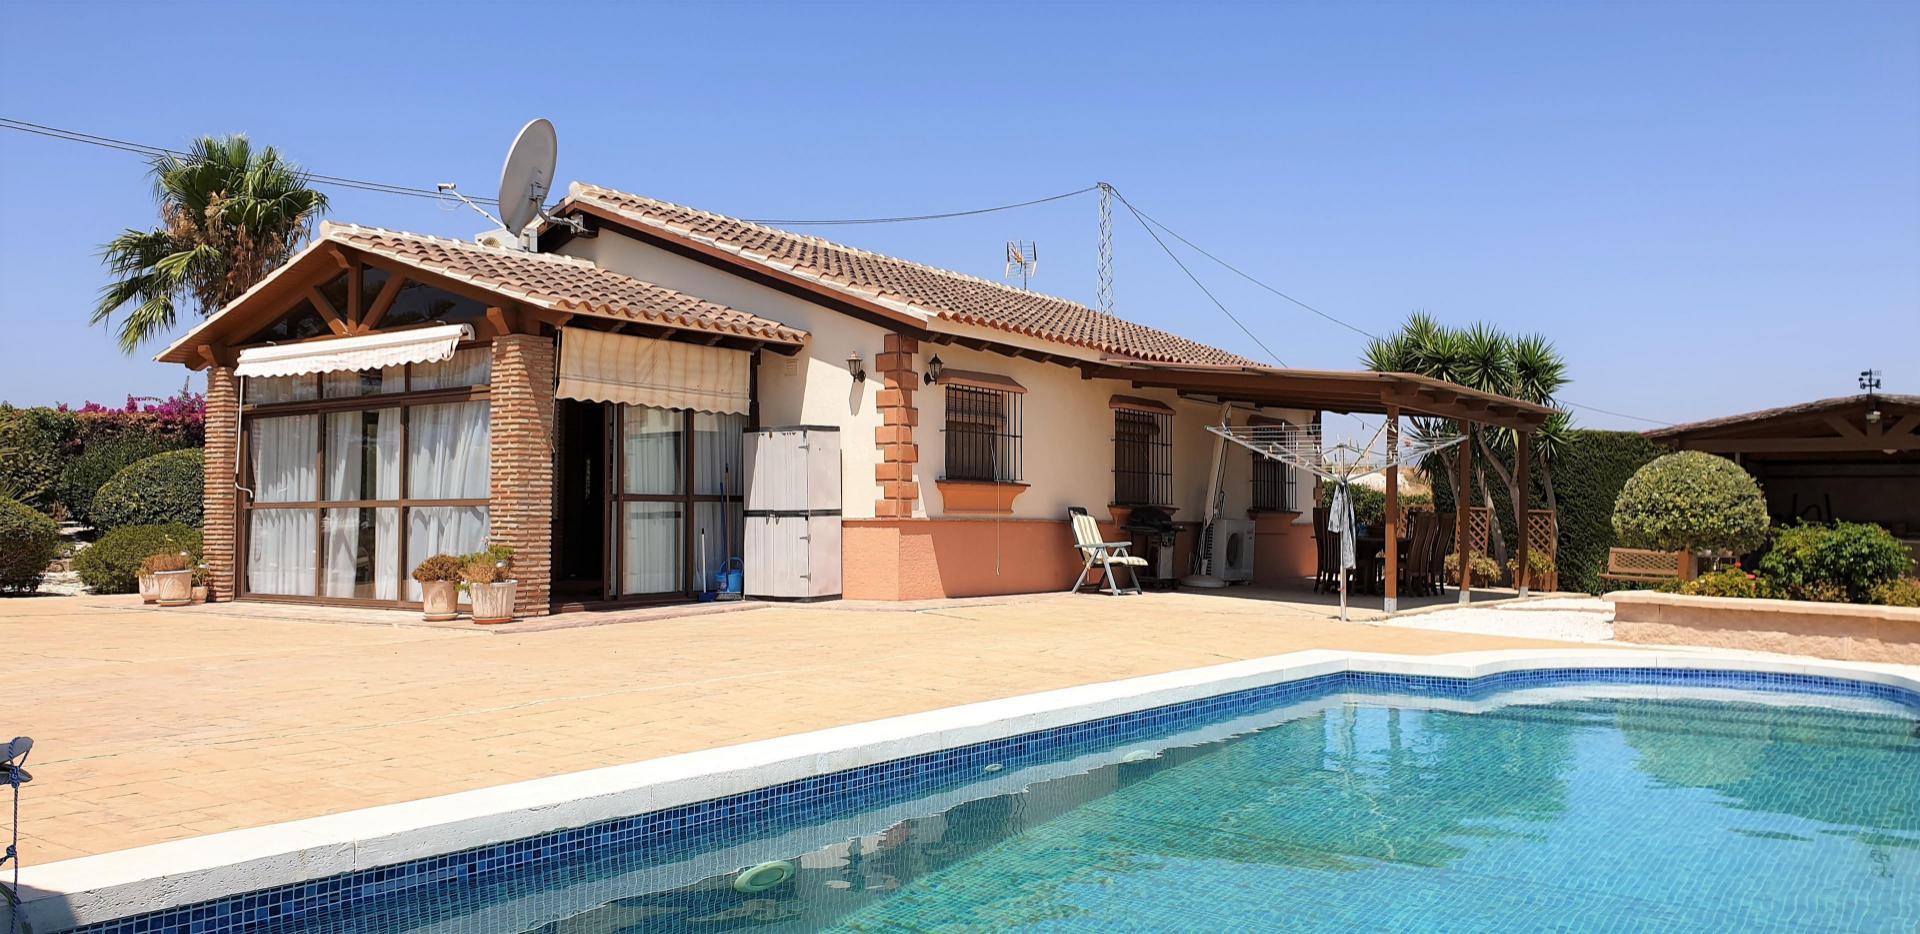 Ref:F3439705 country house For Sale in Alhaurín el Grande